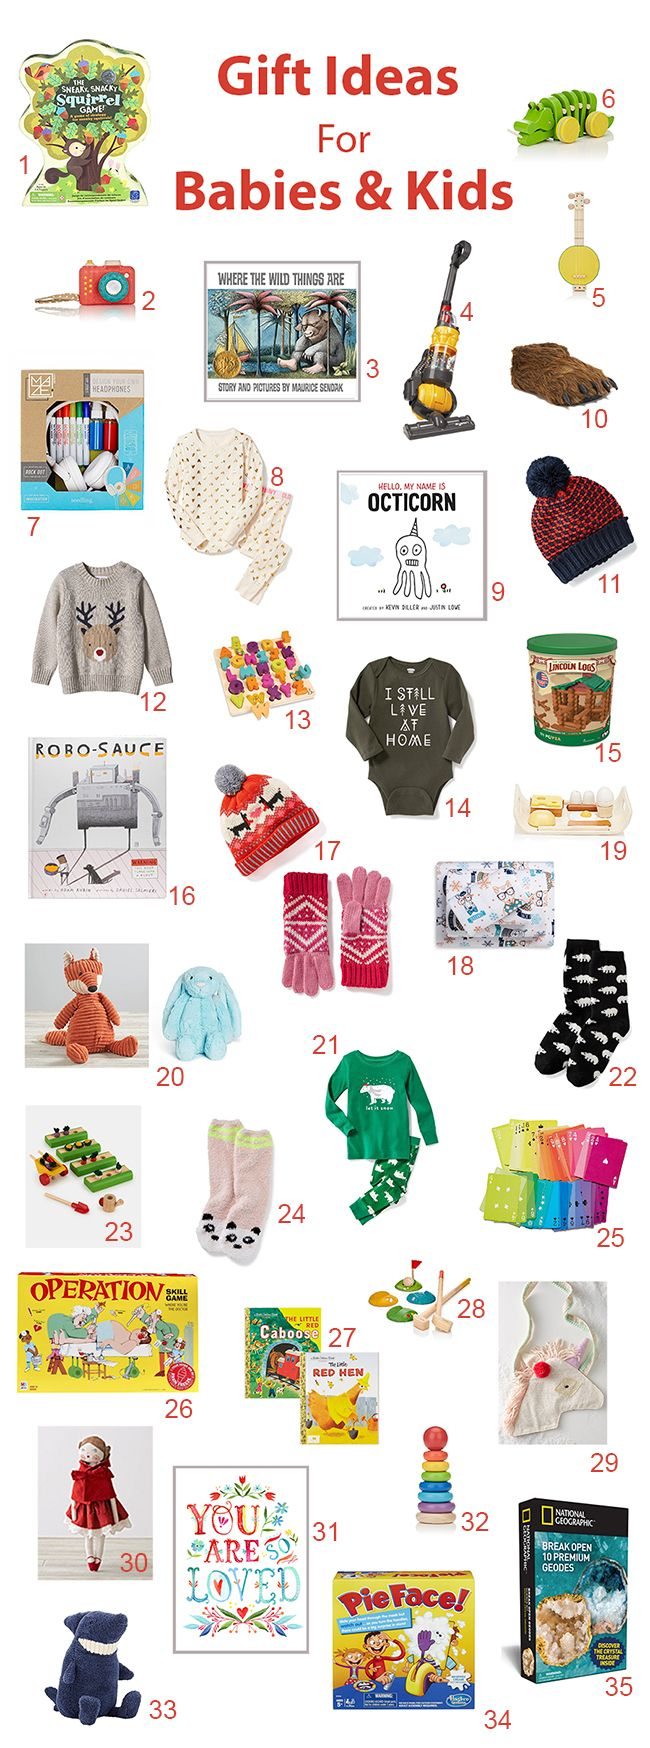 Gift guide for kids and babies full of cute ideas and games and toys and books and items of clothing (many are super discounted!).